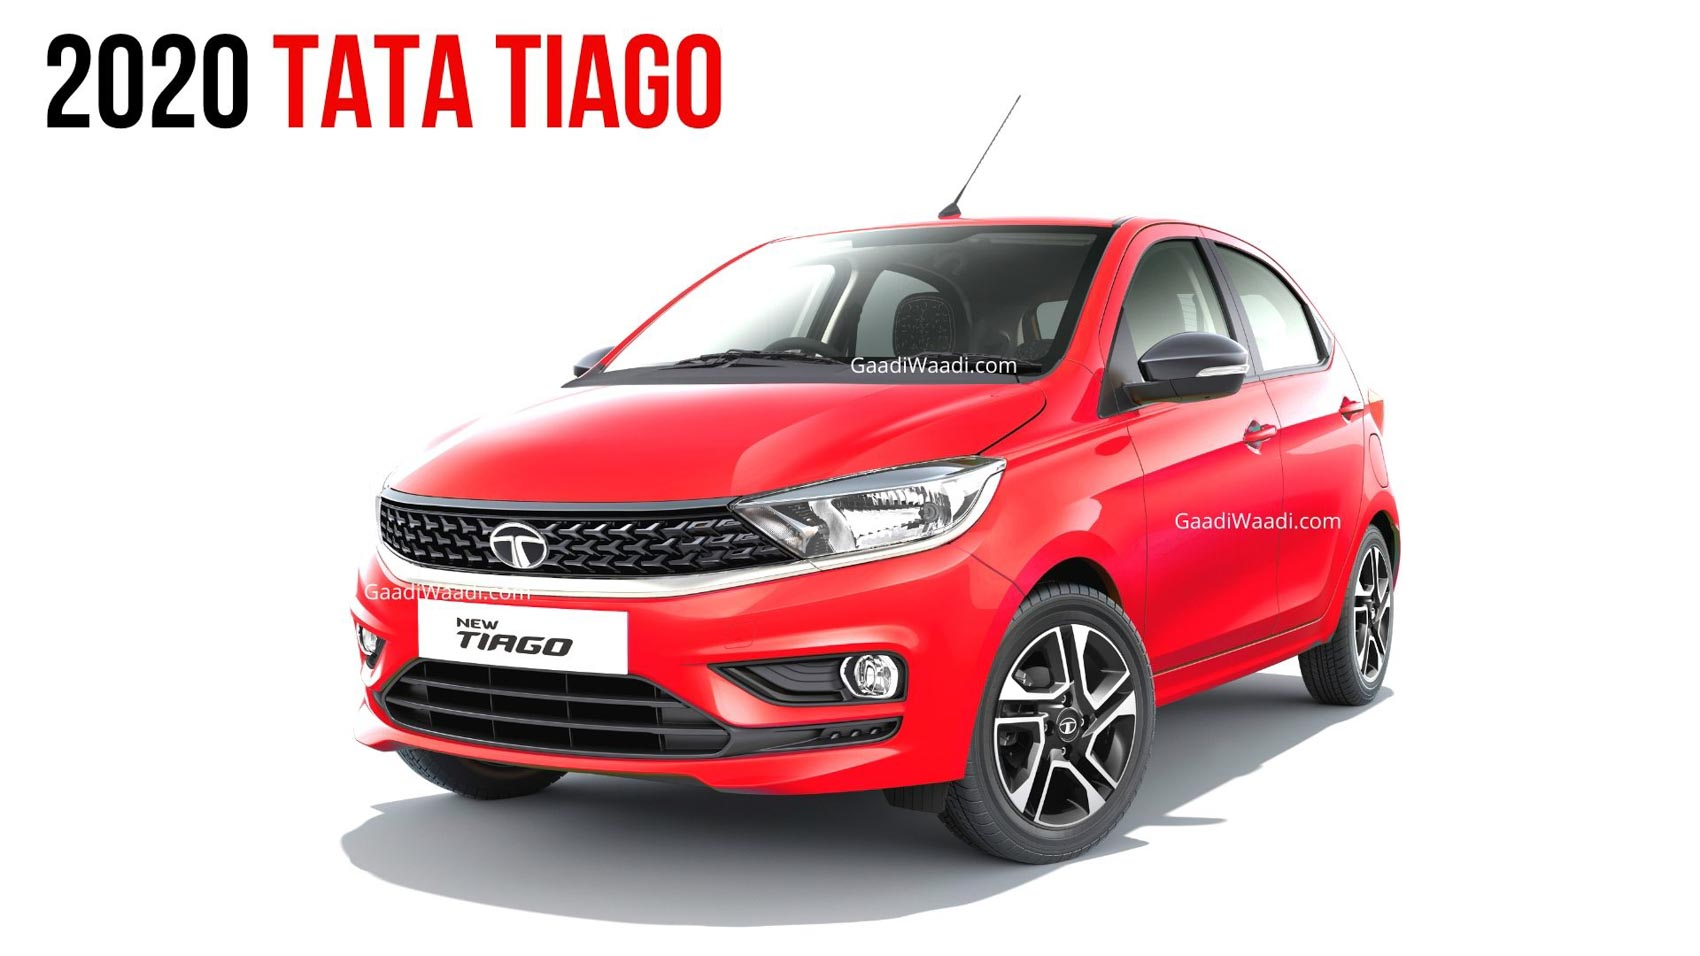 BS6 2020 Tata Tiago Facelift Launched From Rs. 4.60 Lakh – Walkaround Video